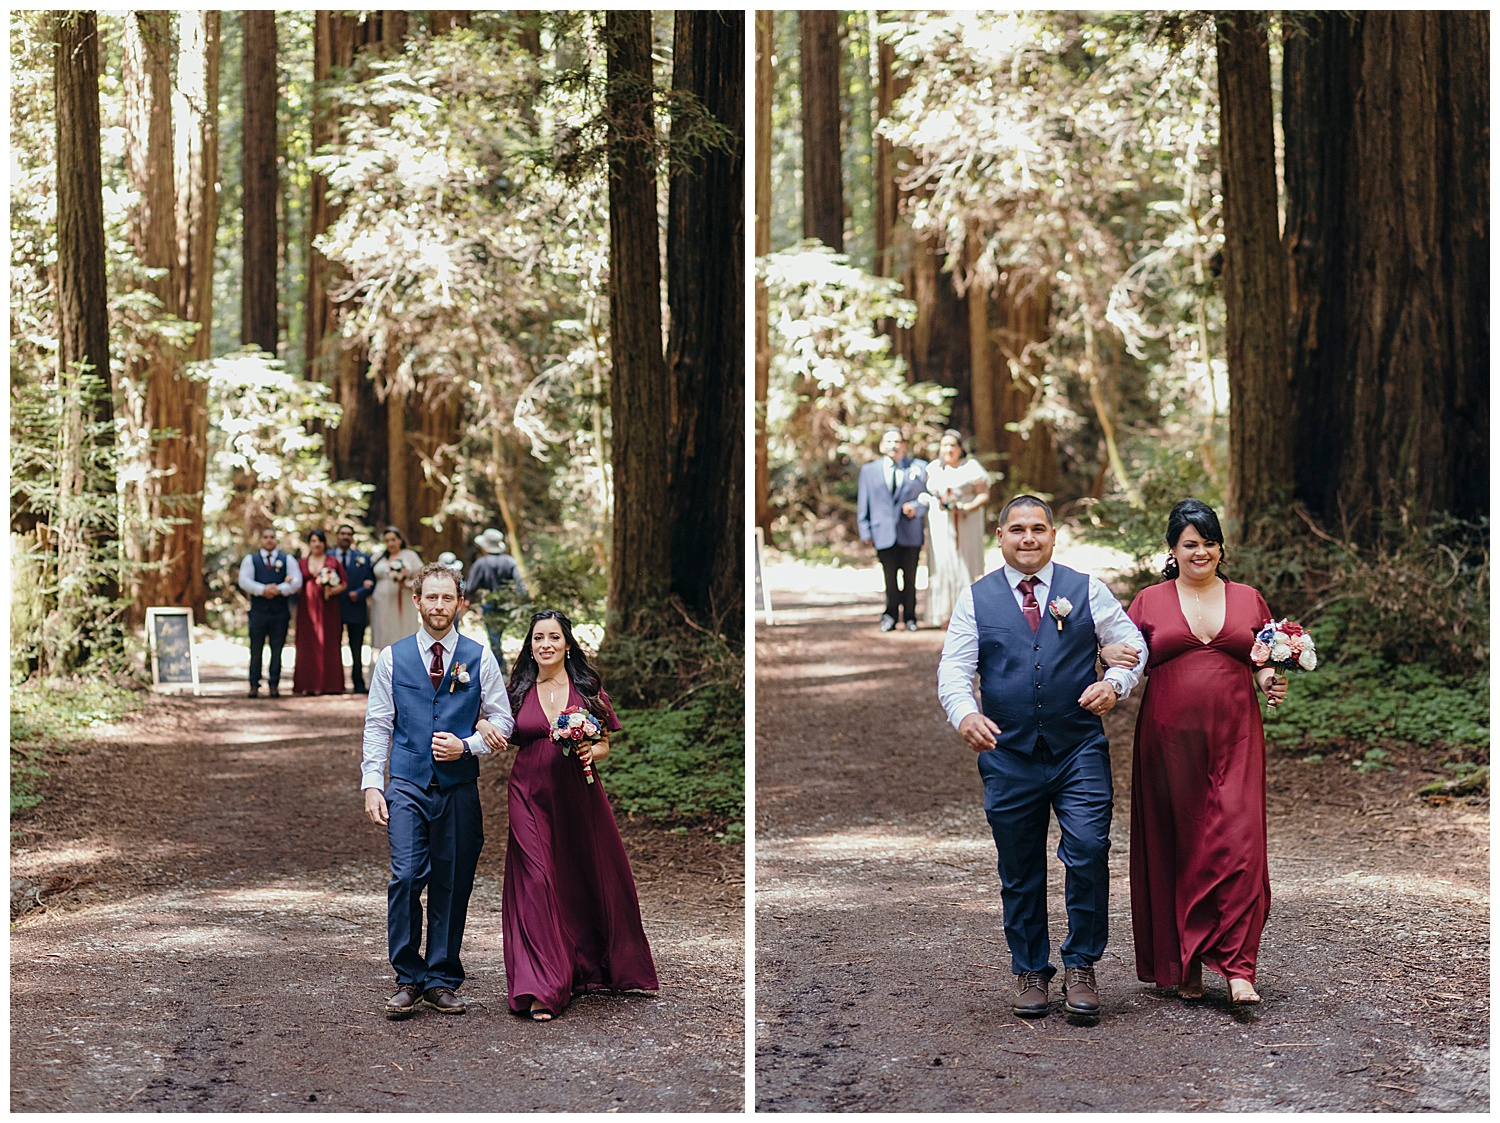 bridal party procession in Henry Cowell redwoods in Felton for wedding